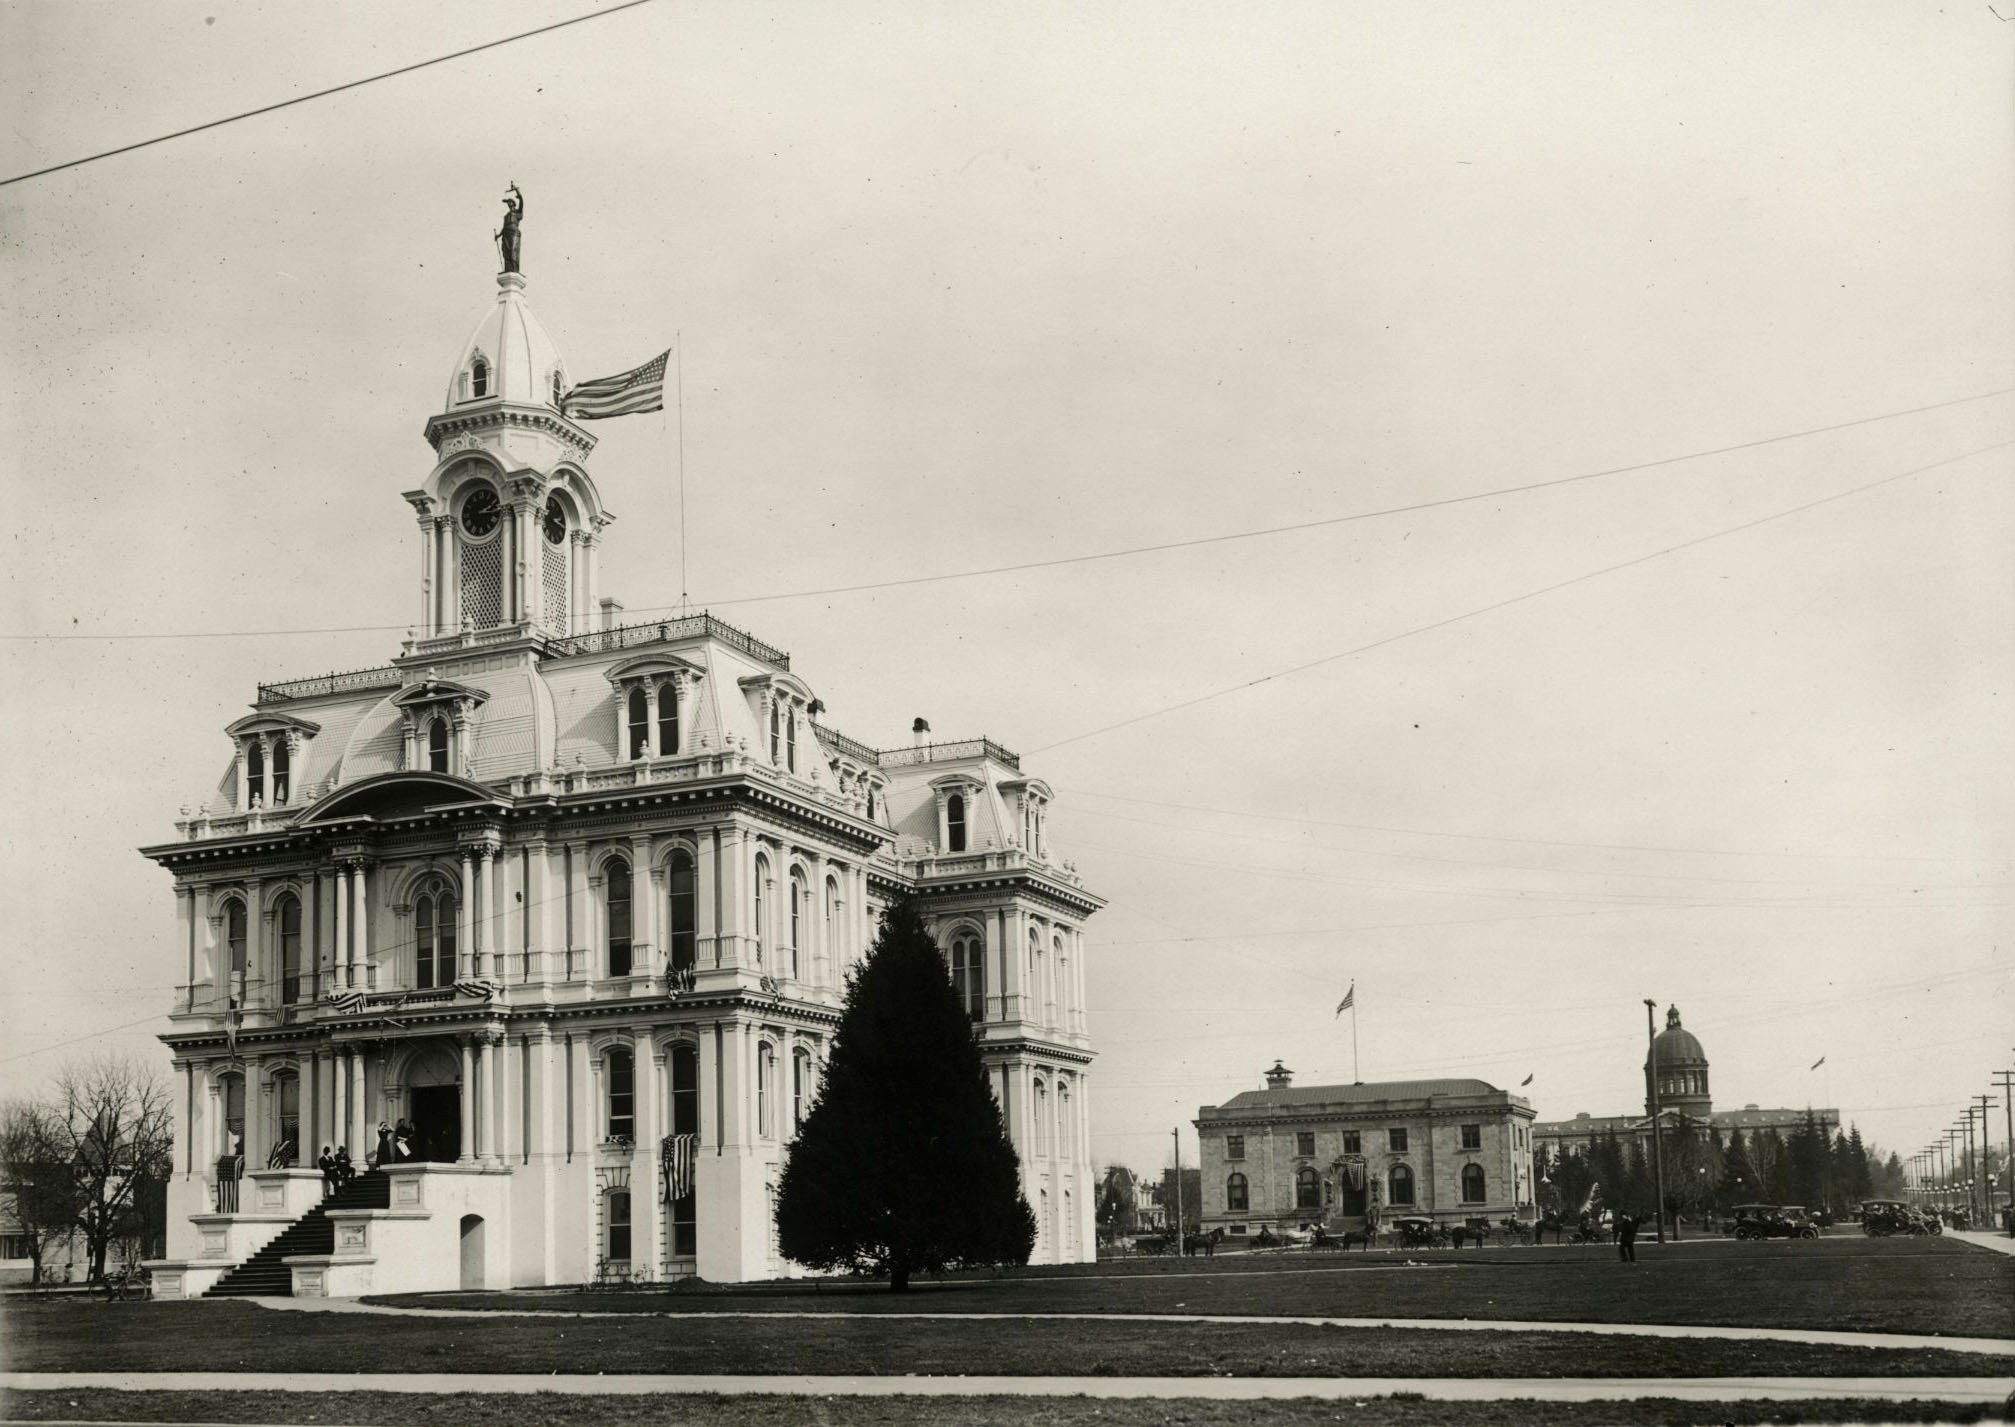 Marion County Courthouse, c. 1920